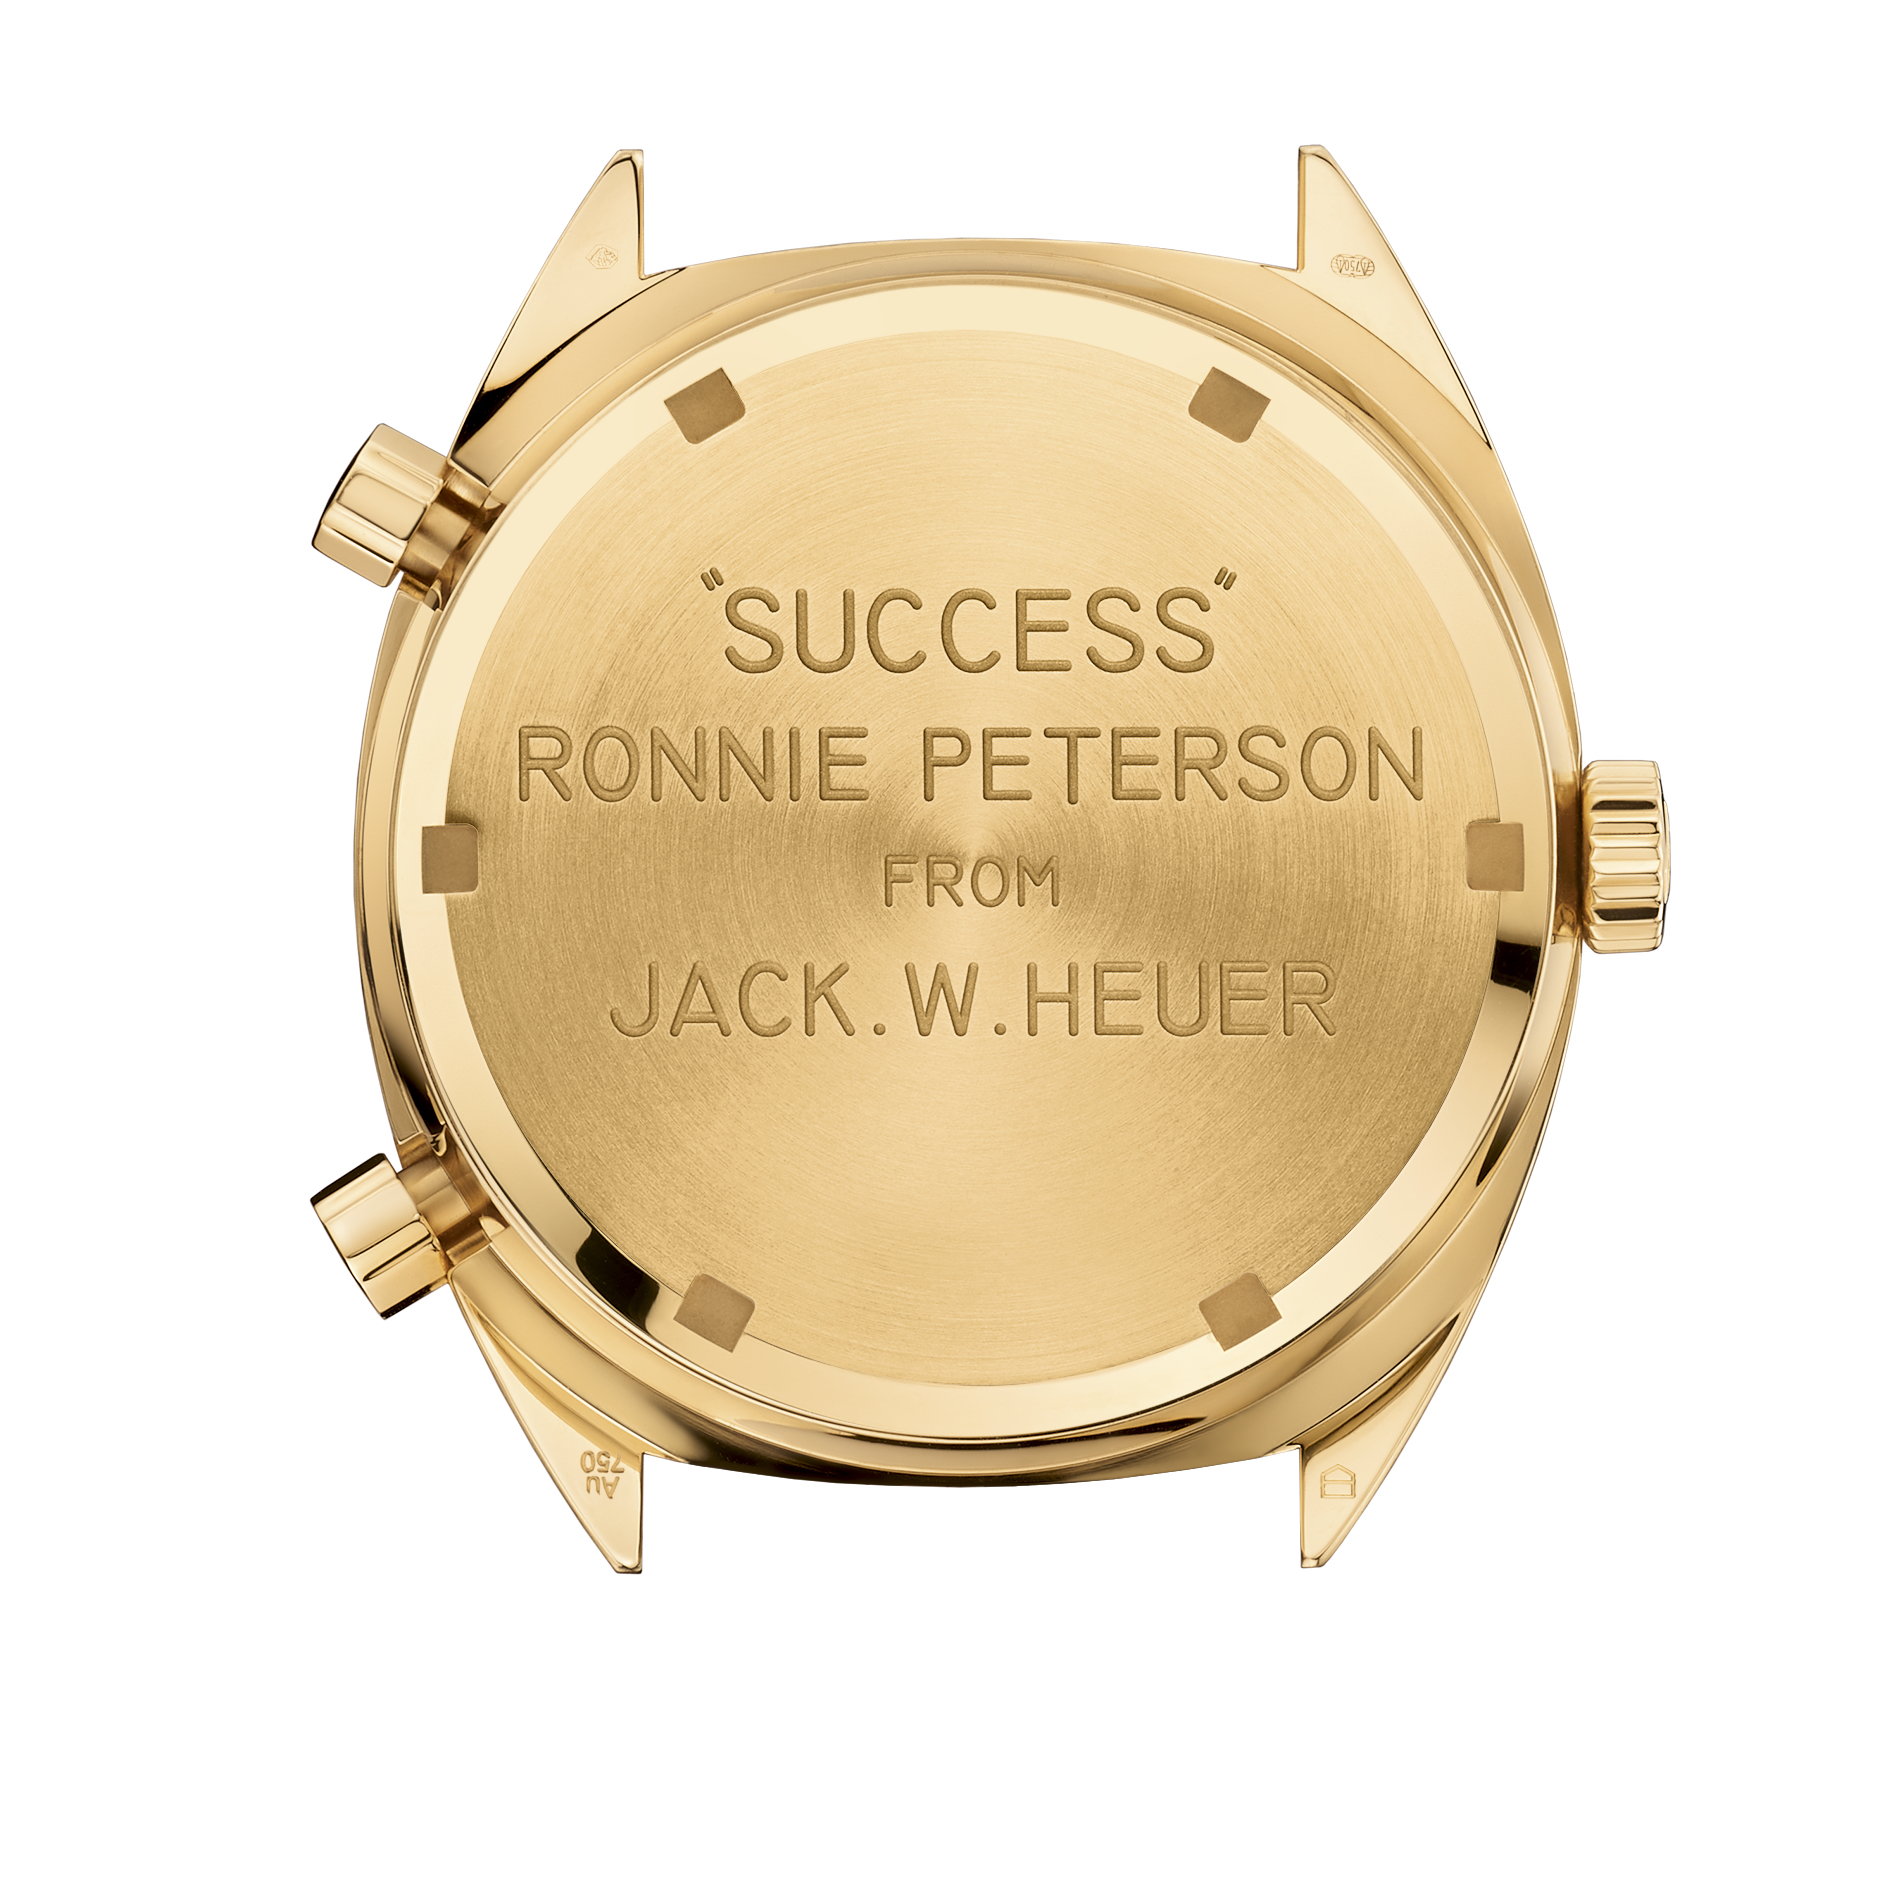 "The back of the watch was engraved with ""Success Ronnie Peterson from Jack W. Heuer""."